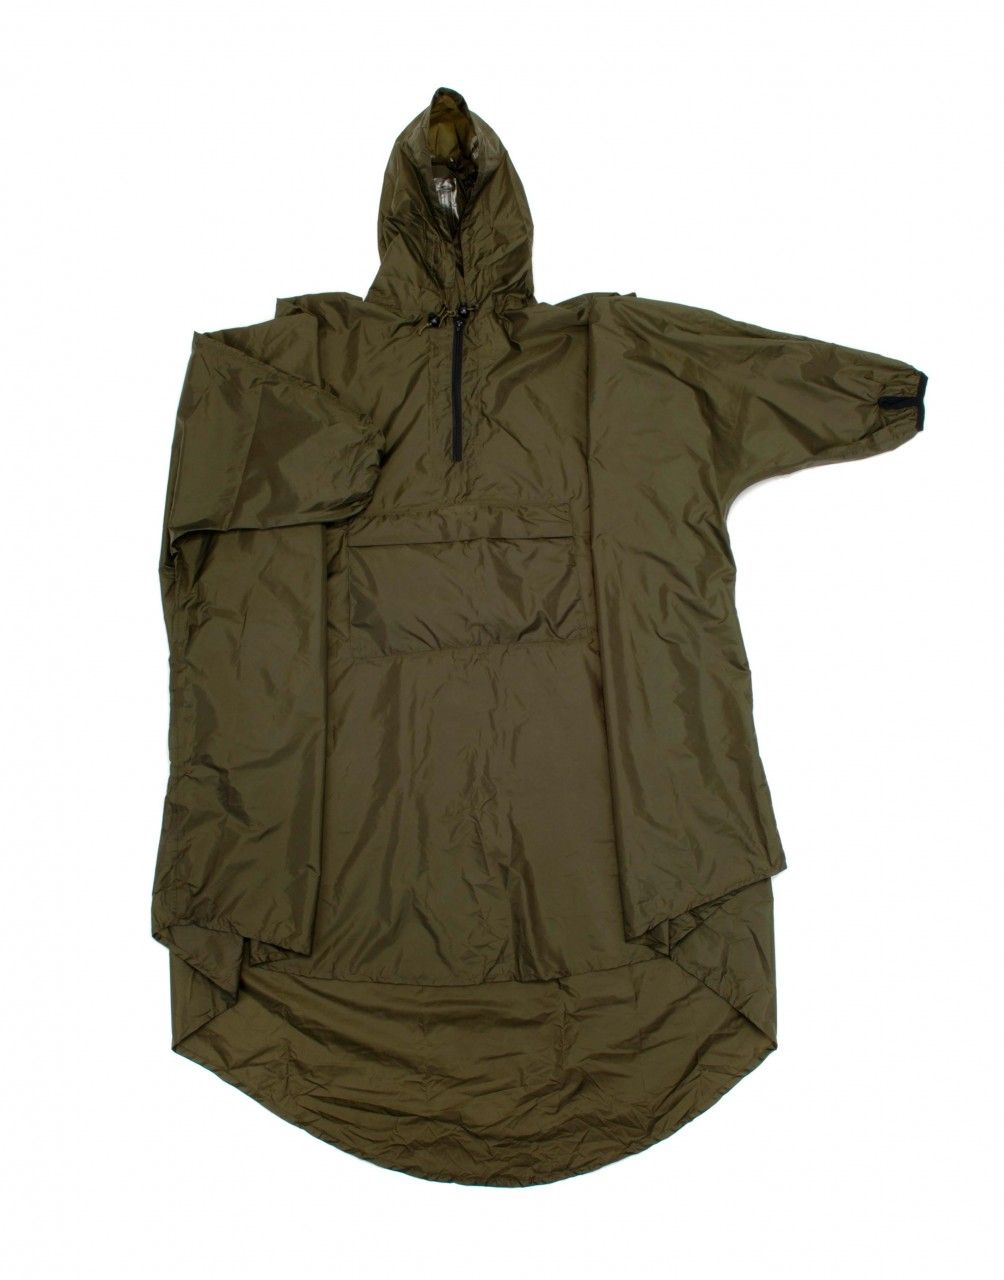 Snugpak Poncho Waterproof Poncho Tactical Clothing Outdoor Outfit